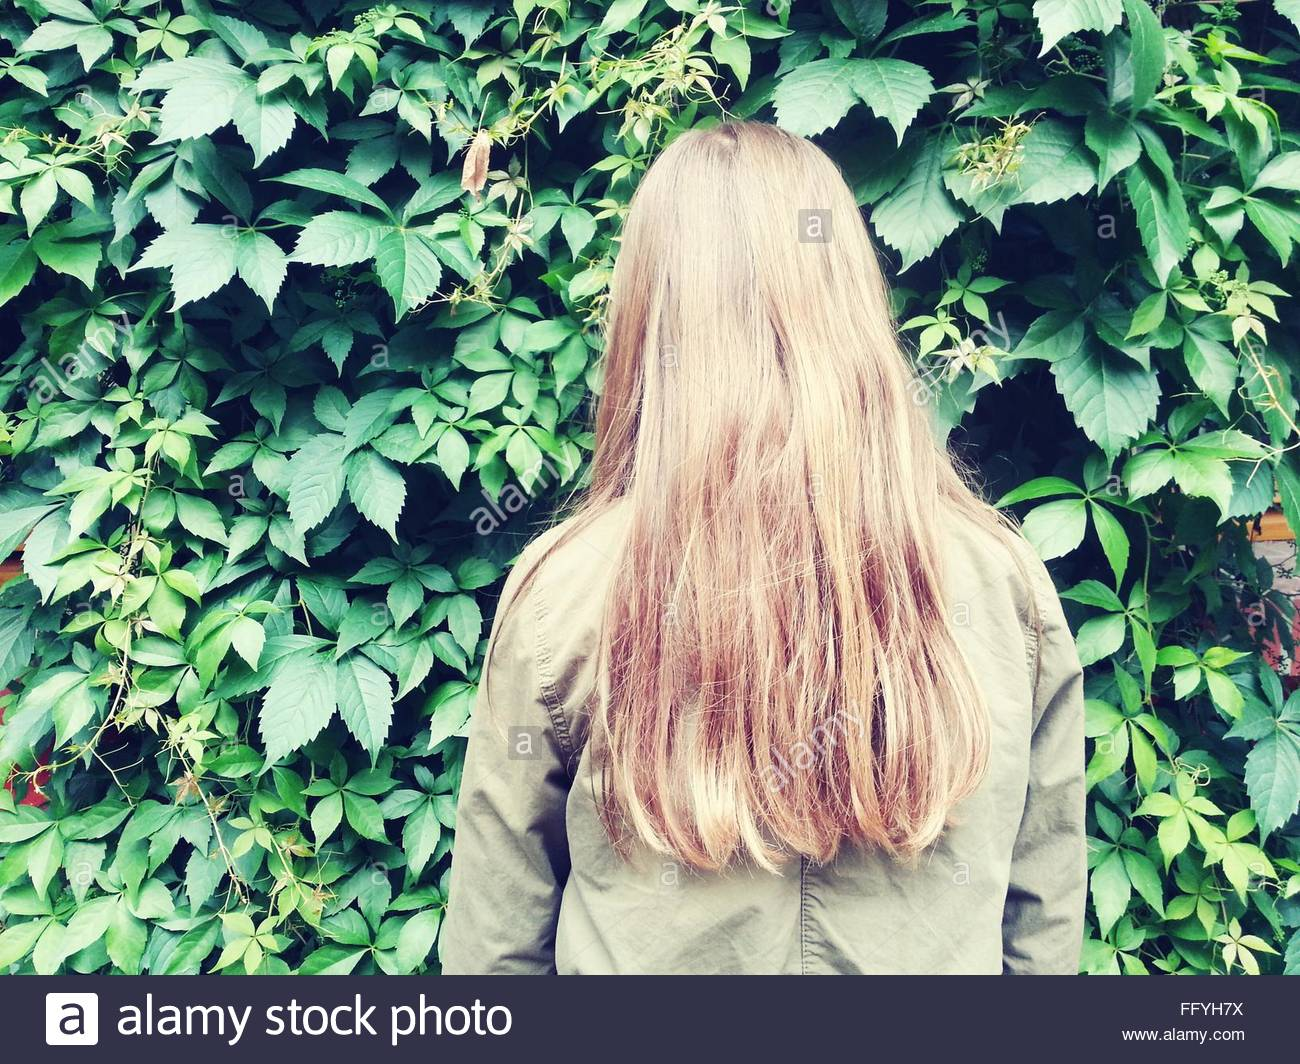 Rear View Of Woman Standing Against Plants In Garden - Stock Image